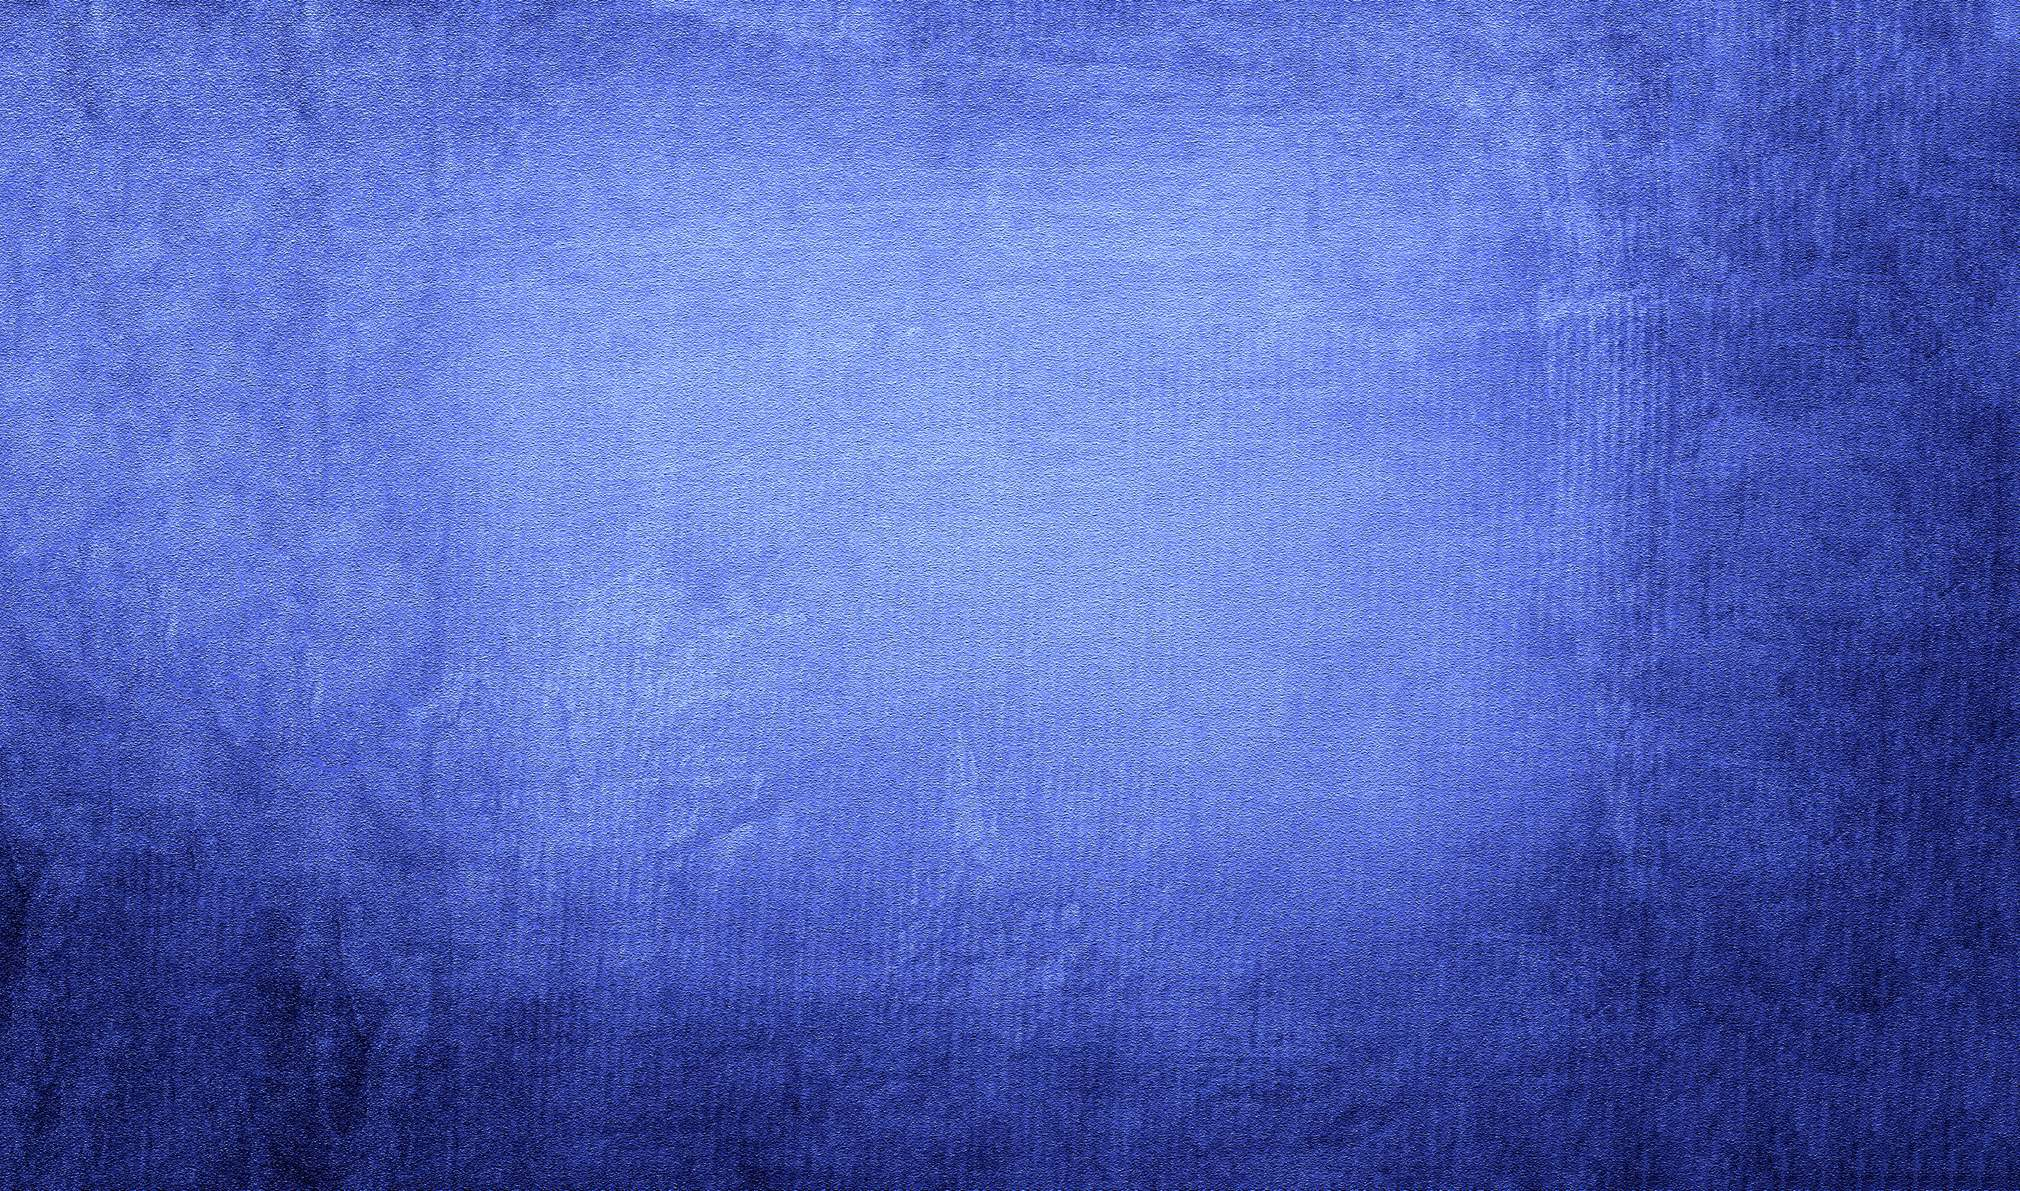 Blue vintage background texture photohdx for Textures and backgrounds